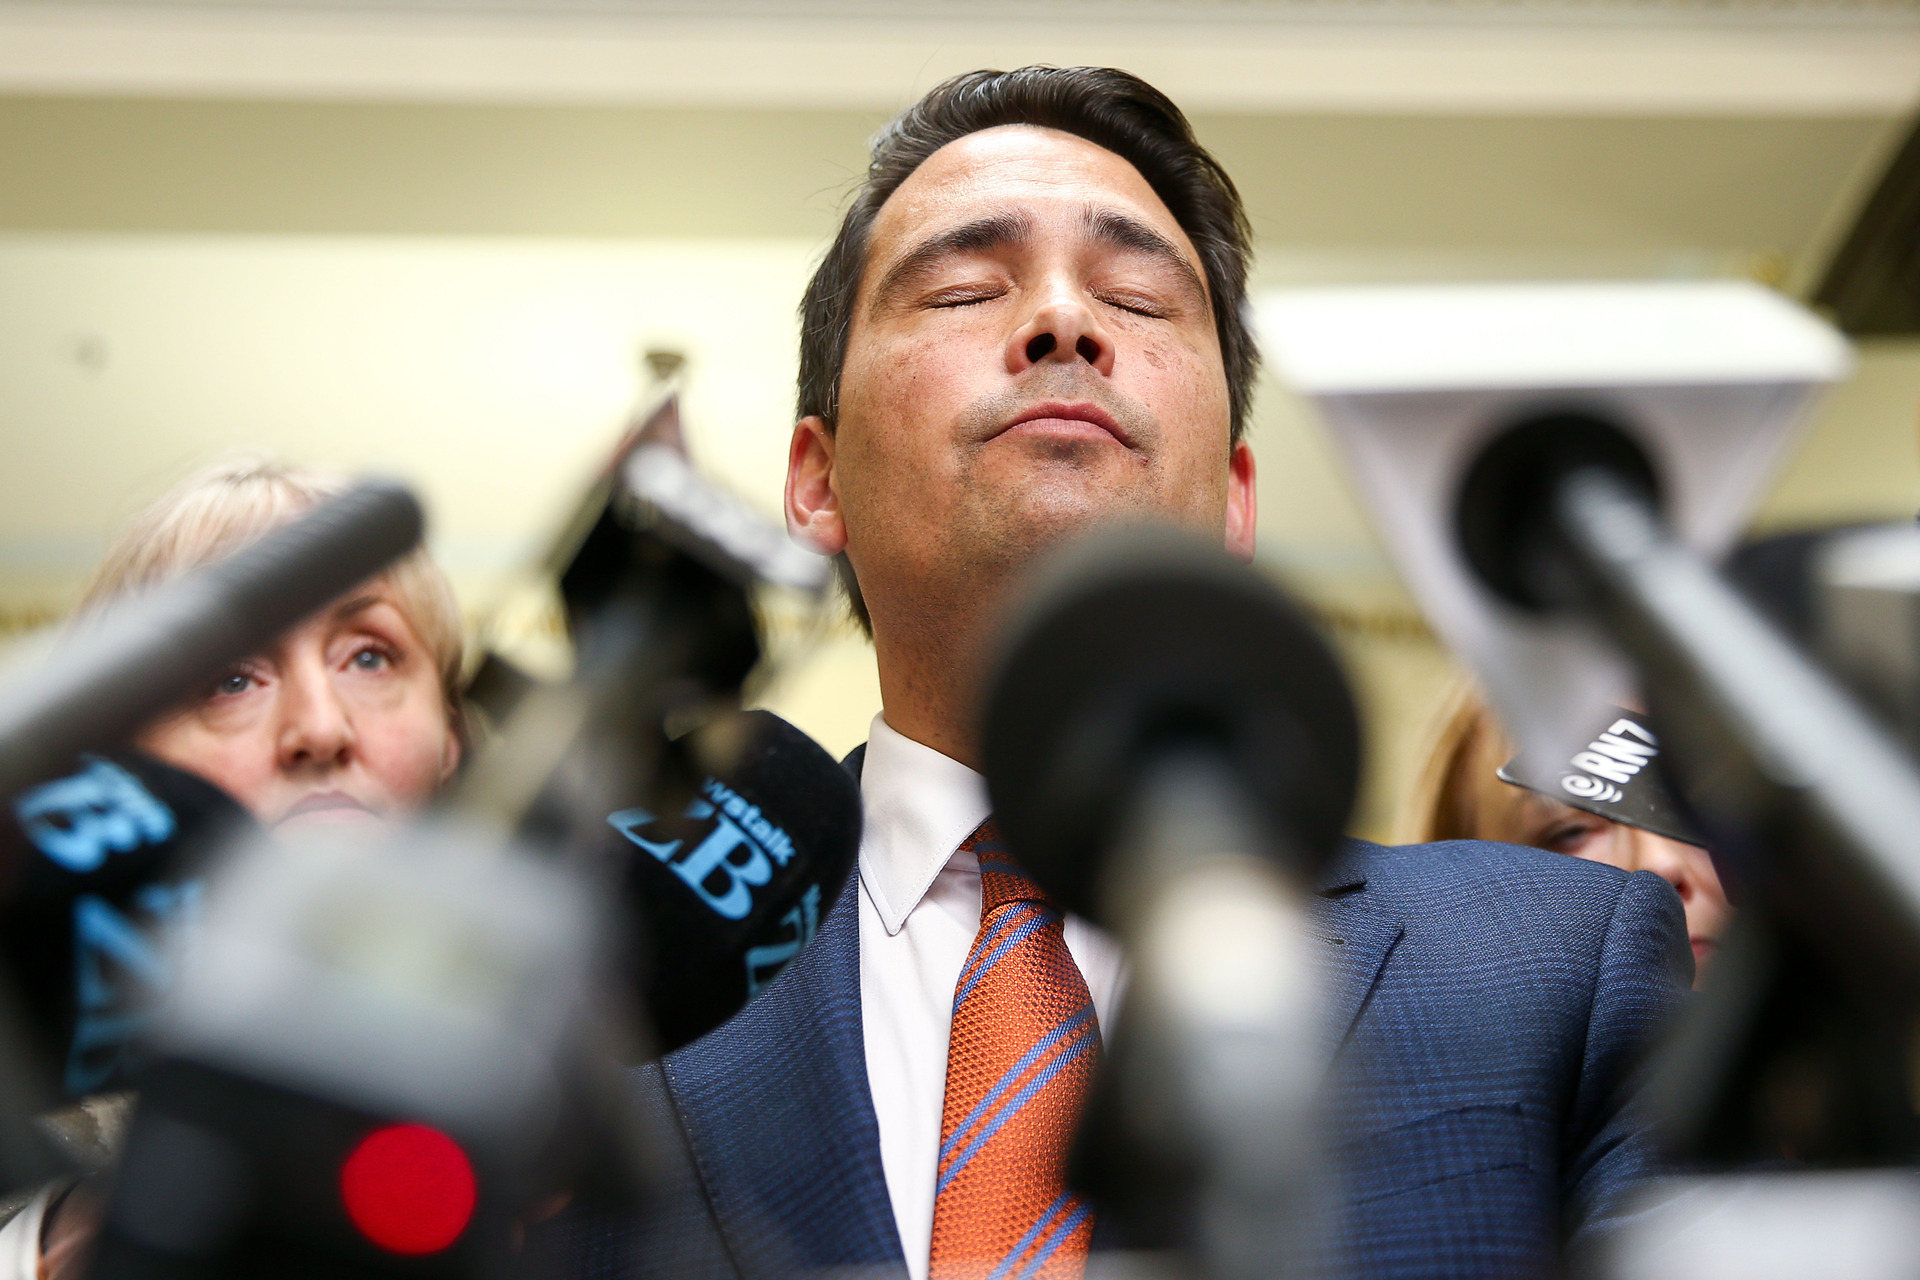 Simon Bridges speaks incredibly frankly in private: He's also proven himself in a crisis this week